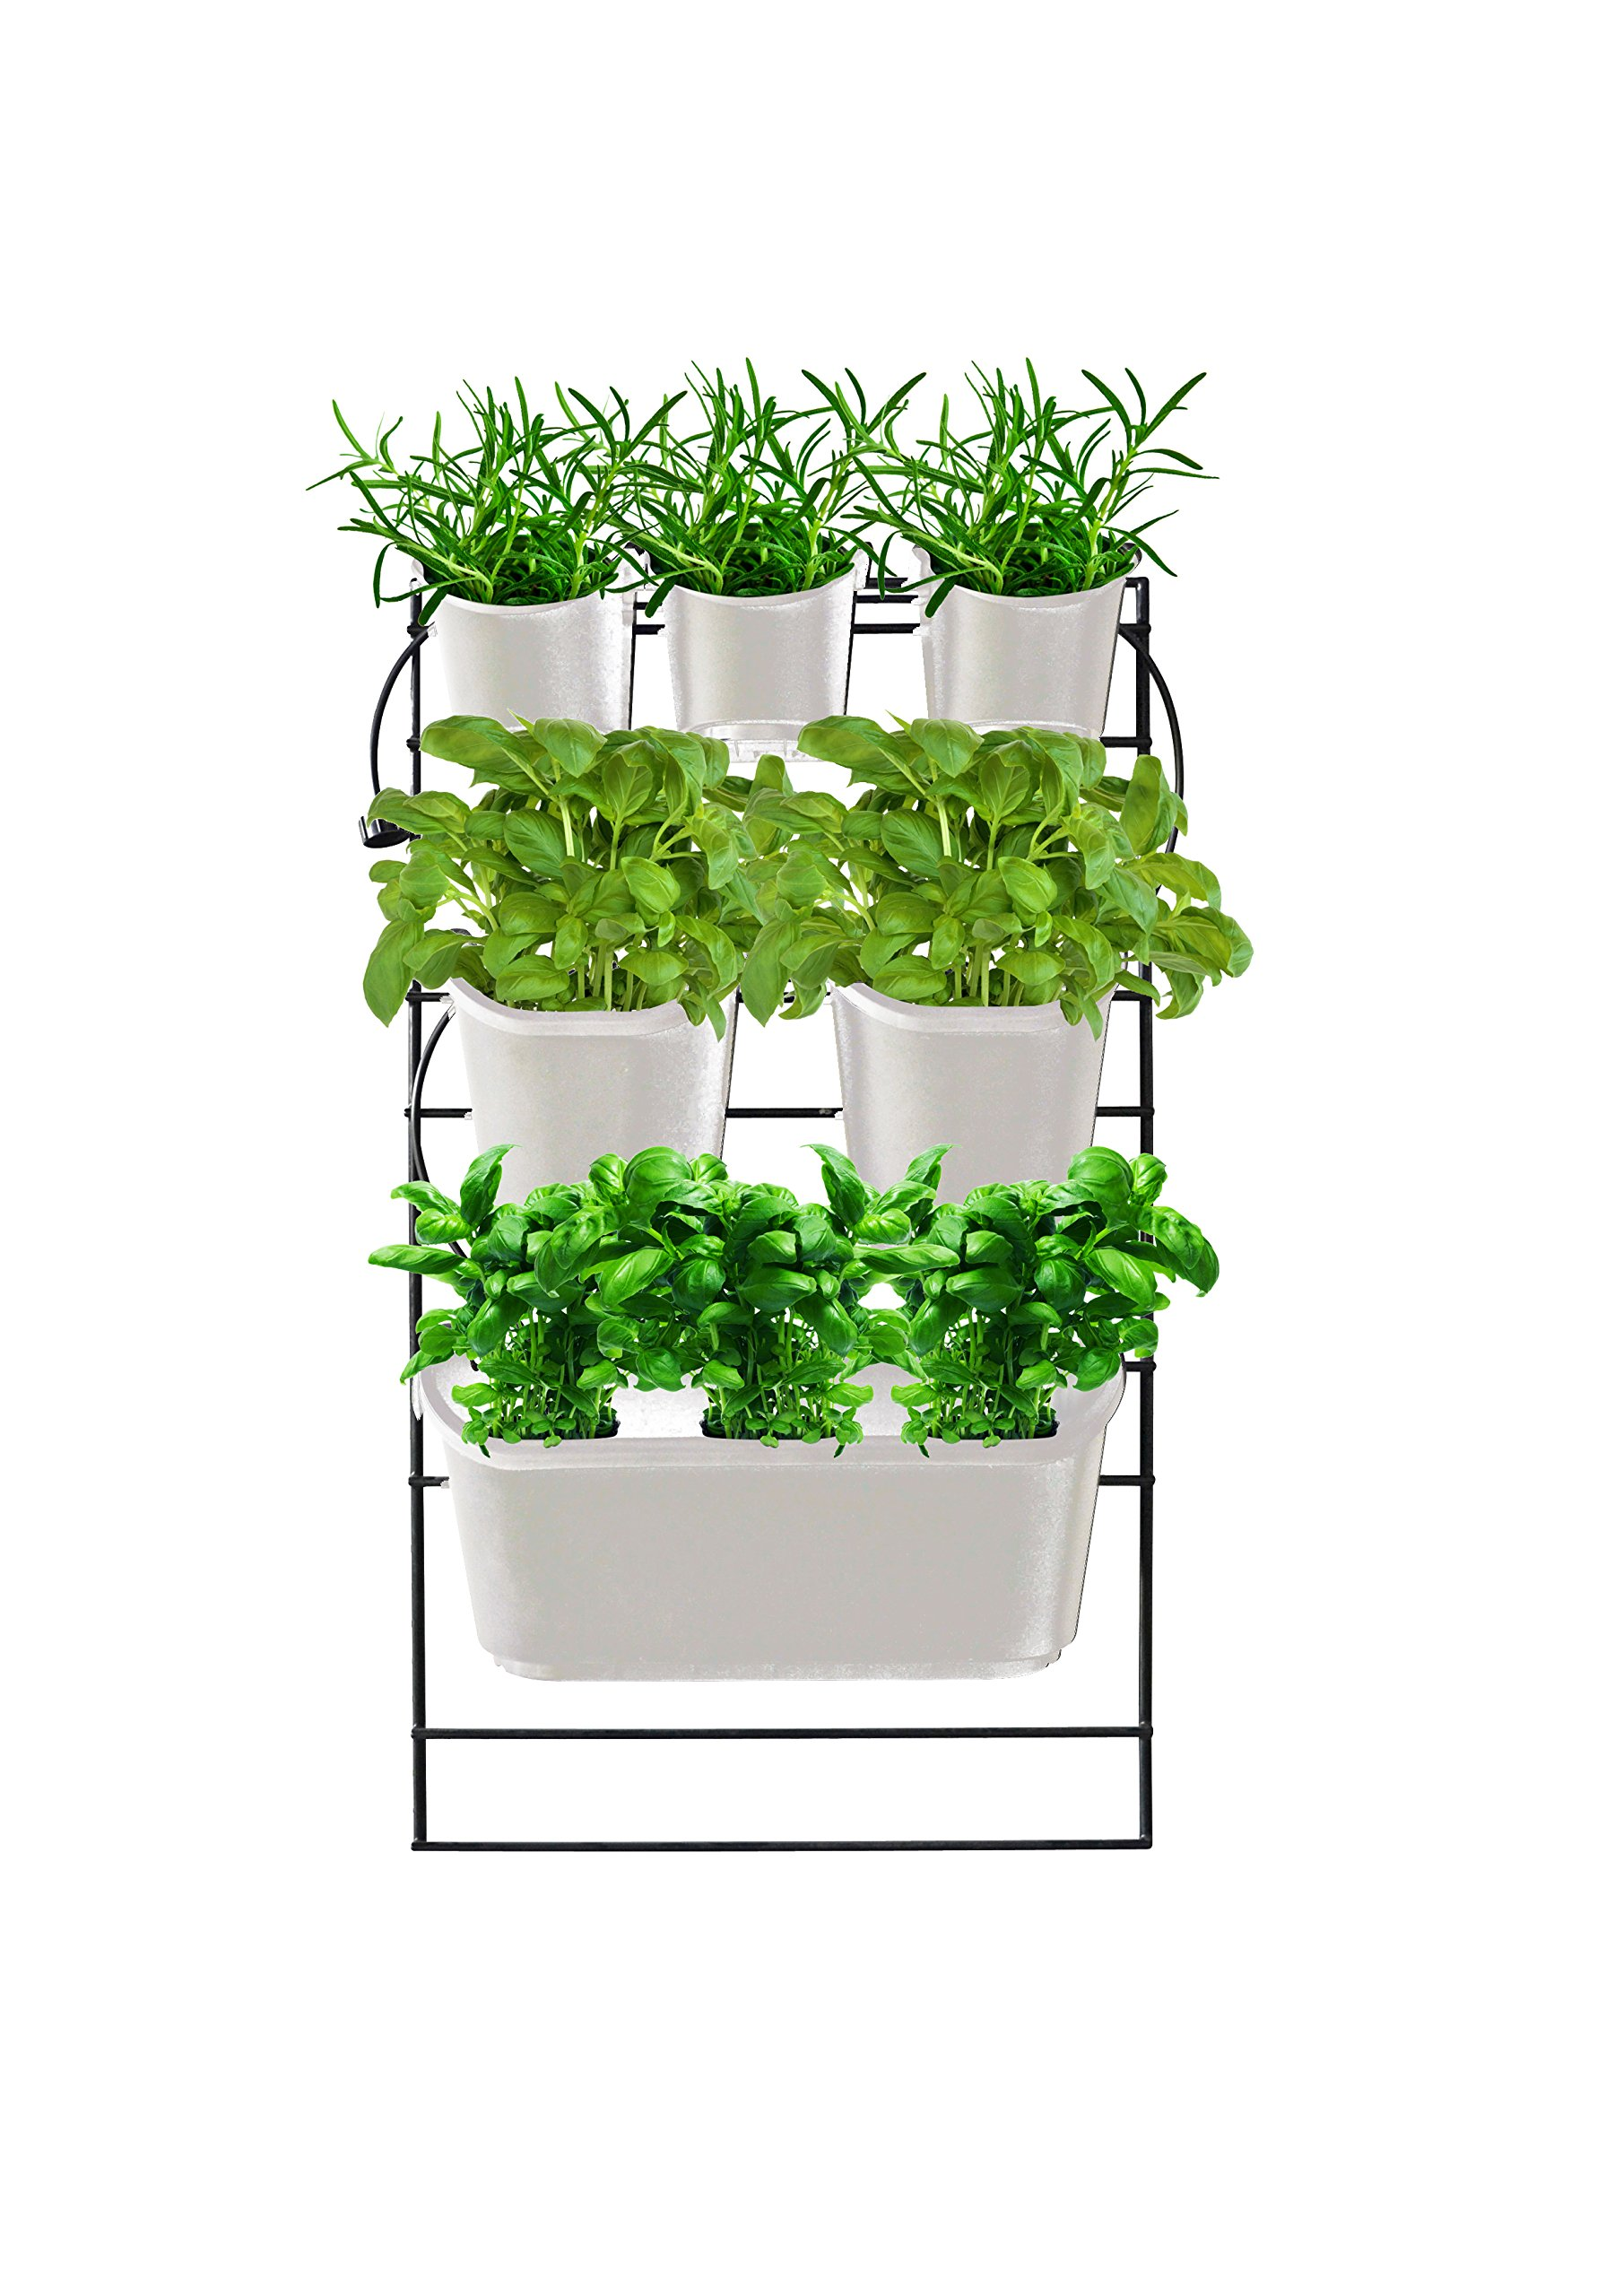 Watex WX056 Metal Mounted Green Wall Vertical Planter, Cool Grey